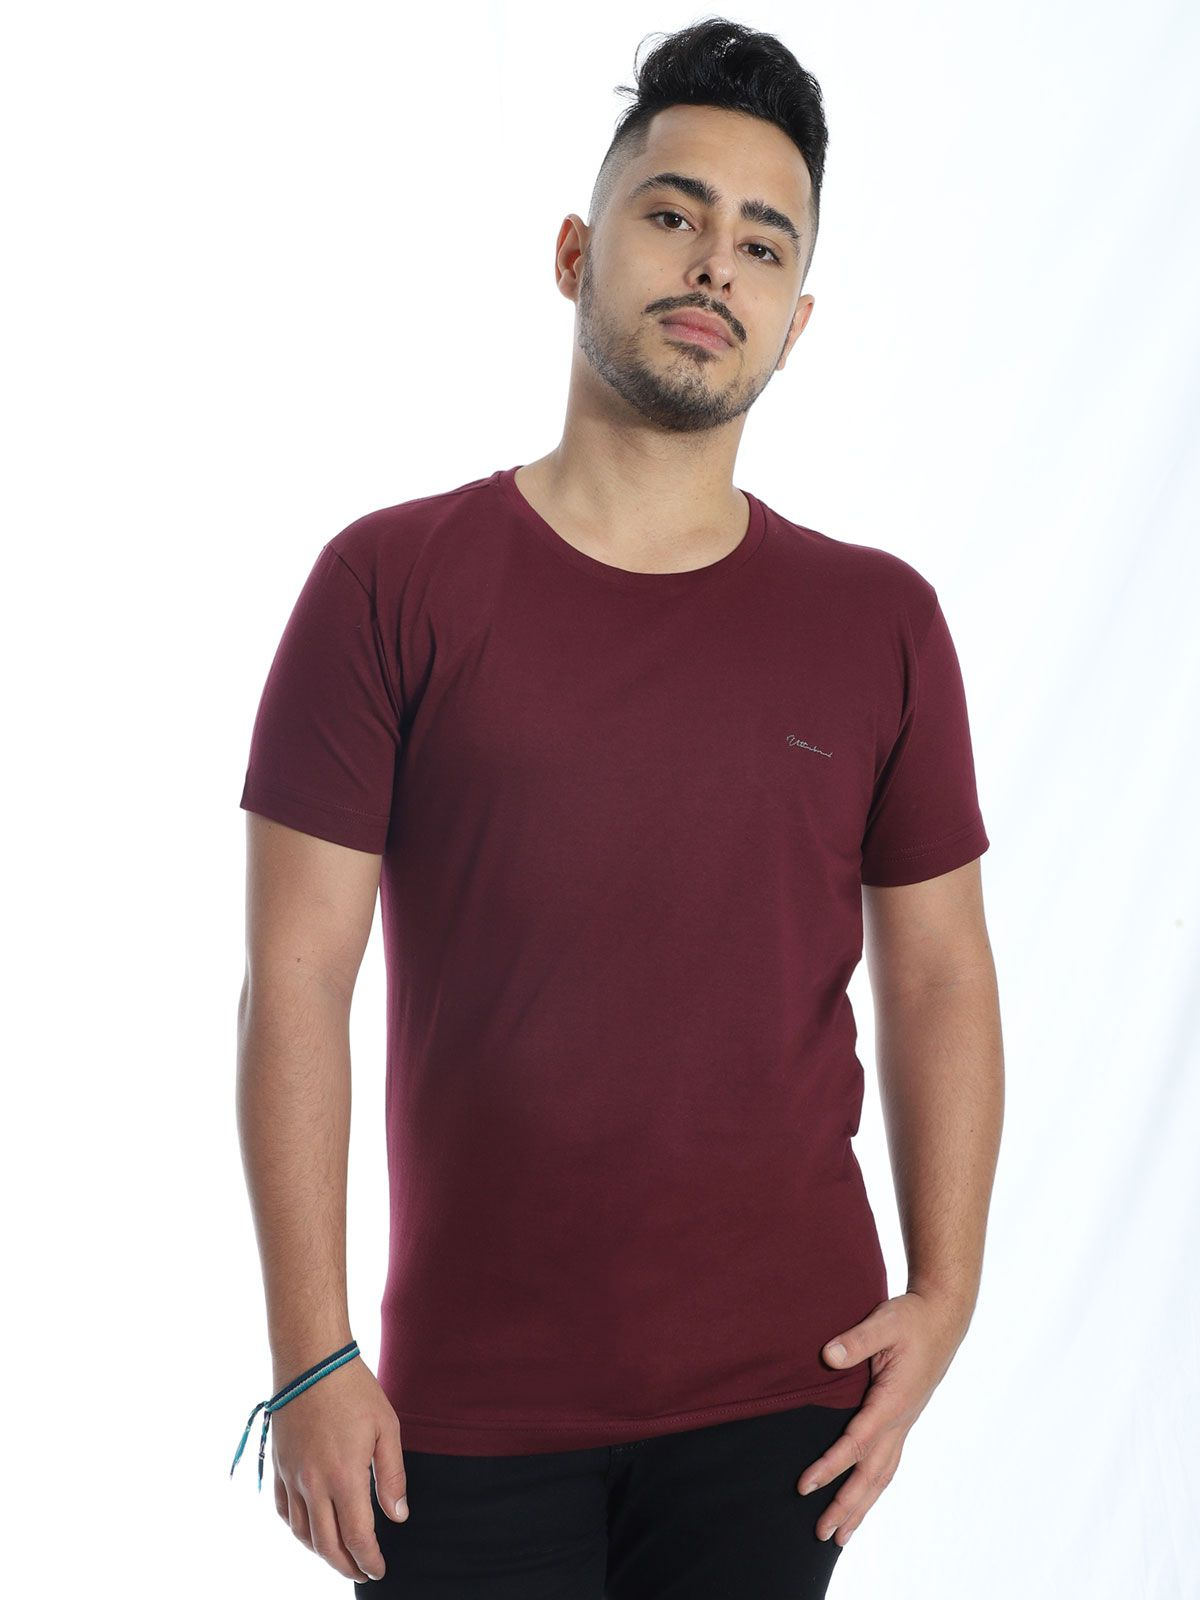 Camiseta Anistia Slim Fit Ultrabrand Vinho